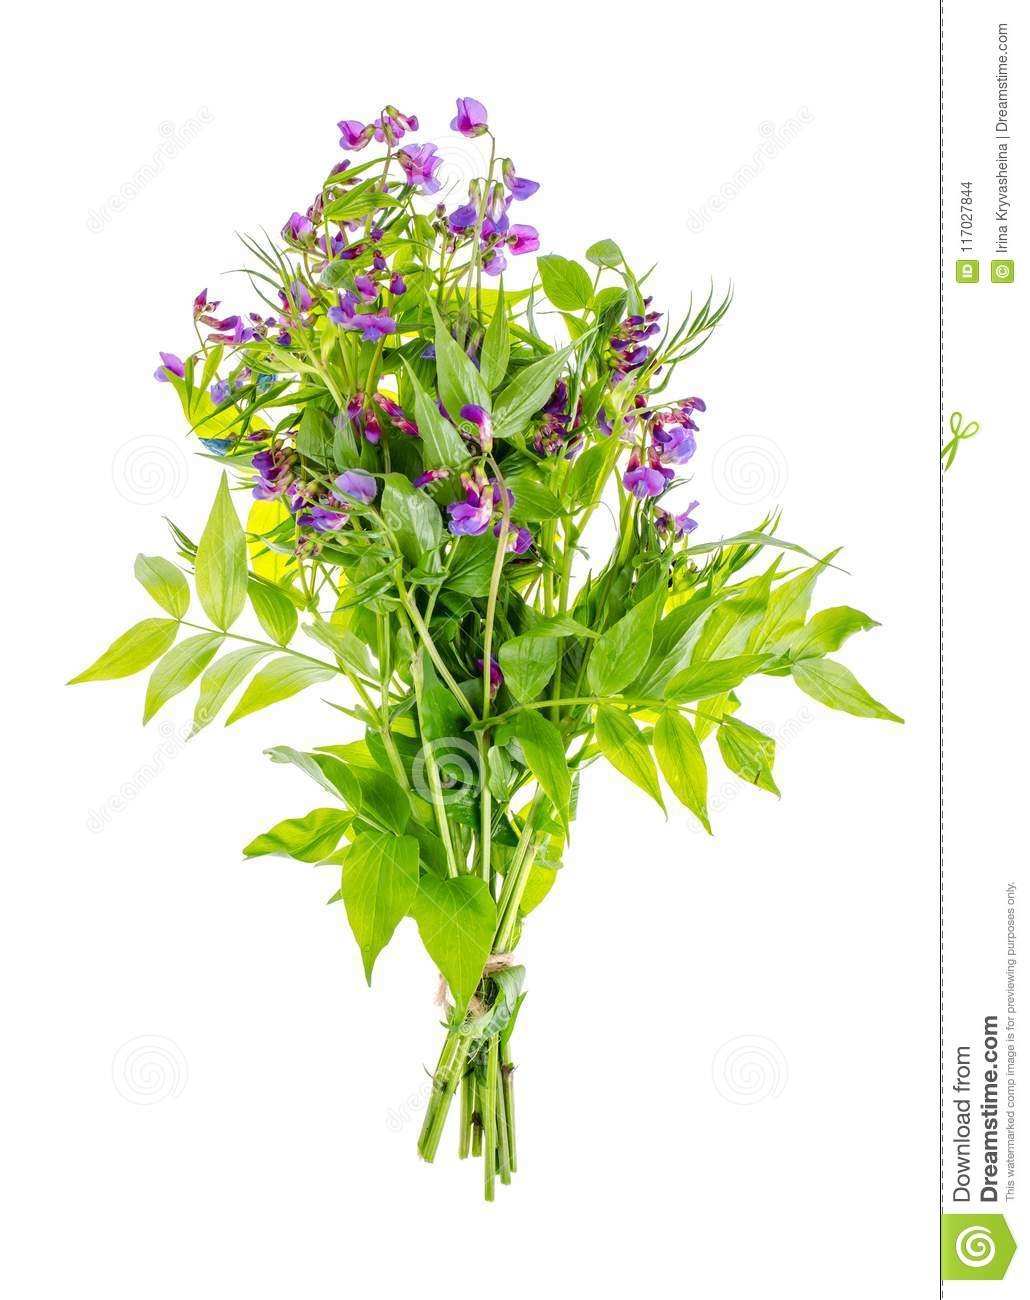 small bouquet of flowers with blue petals stock photo image of rh dreamstime com small bunch of flowers or a sentiment or motto small bunch of flowers tattoo